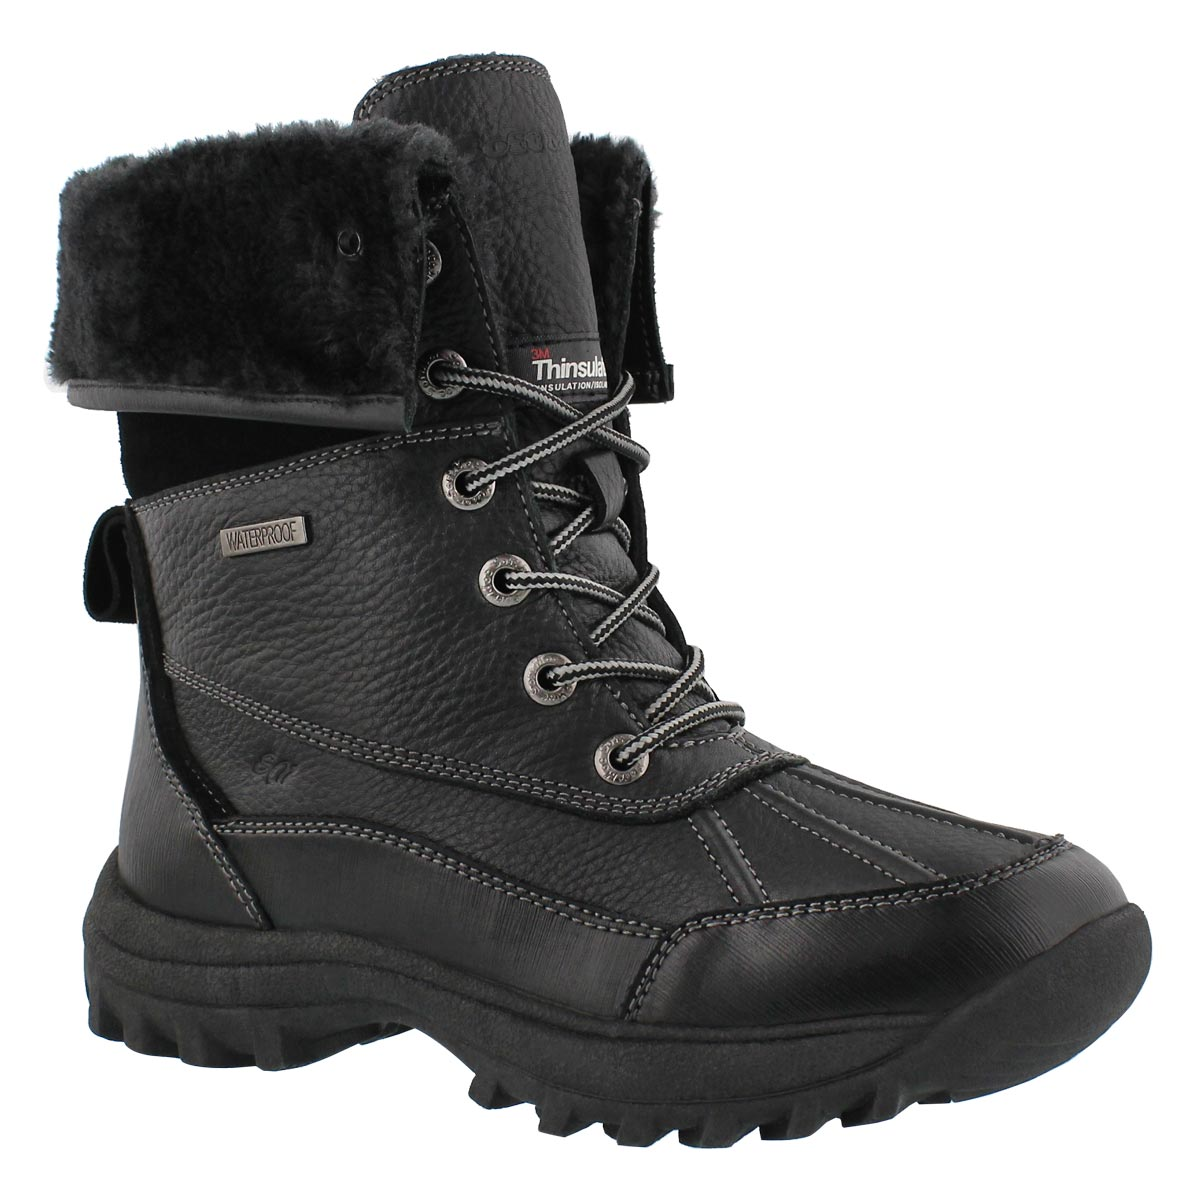 Women's SHAKIRA 2 black waterproof boots